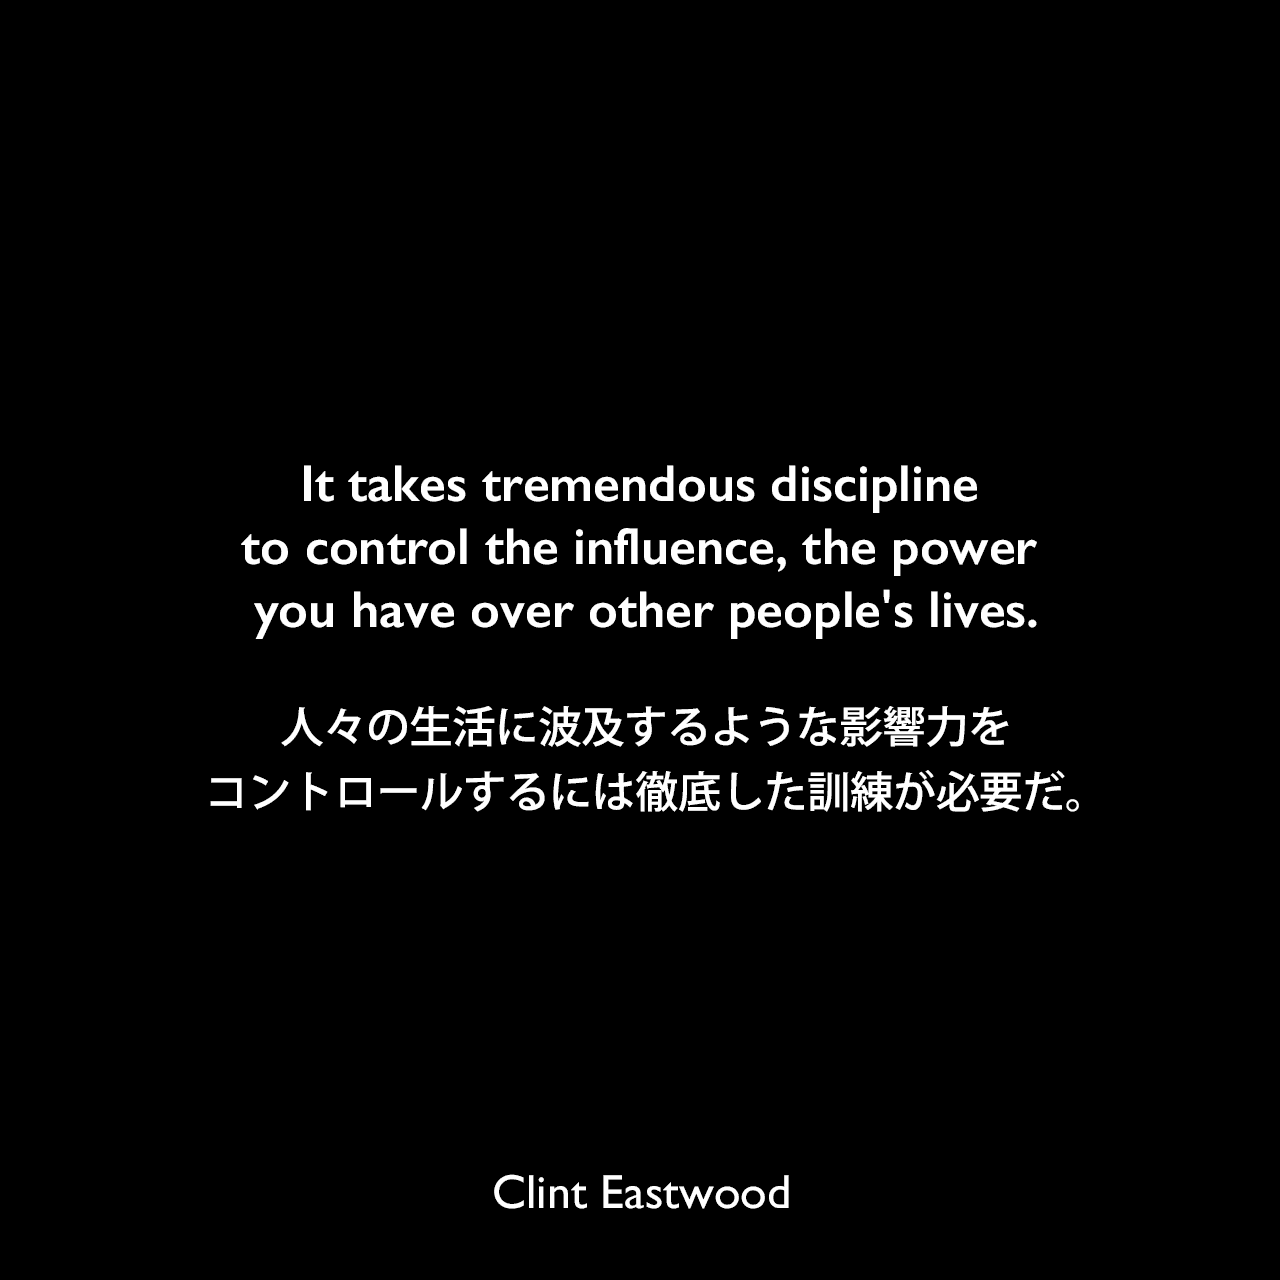 It takes tremendous discipline to control the influence, the power you have over other people's lives.人々の生活に波及するような影響力をコントロールするには徹底した訓練が必要だ。Clint Eastwood